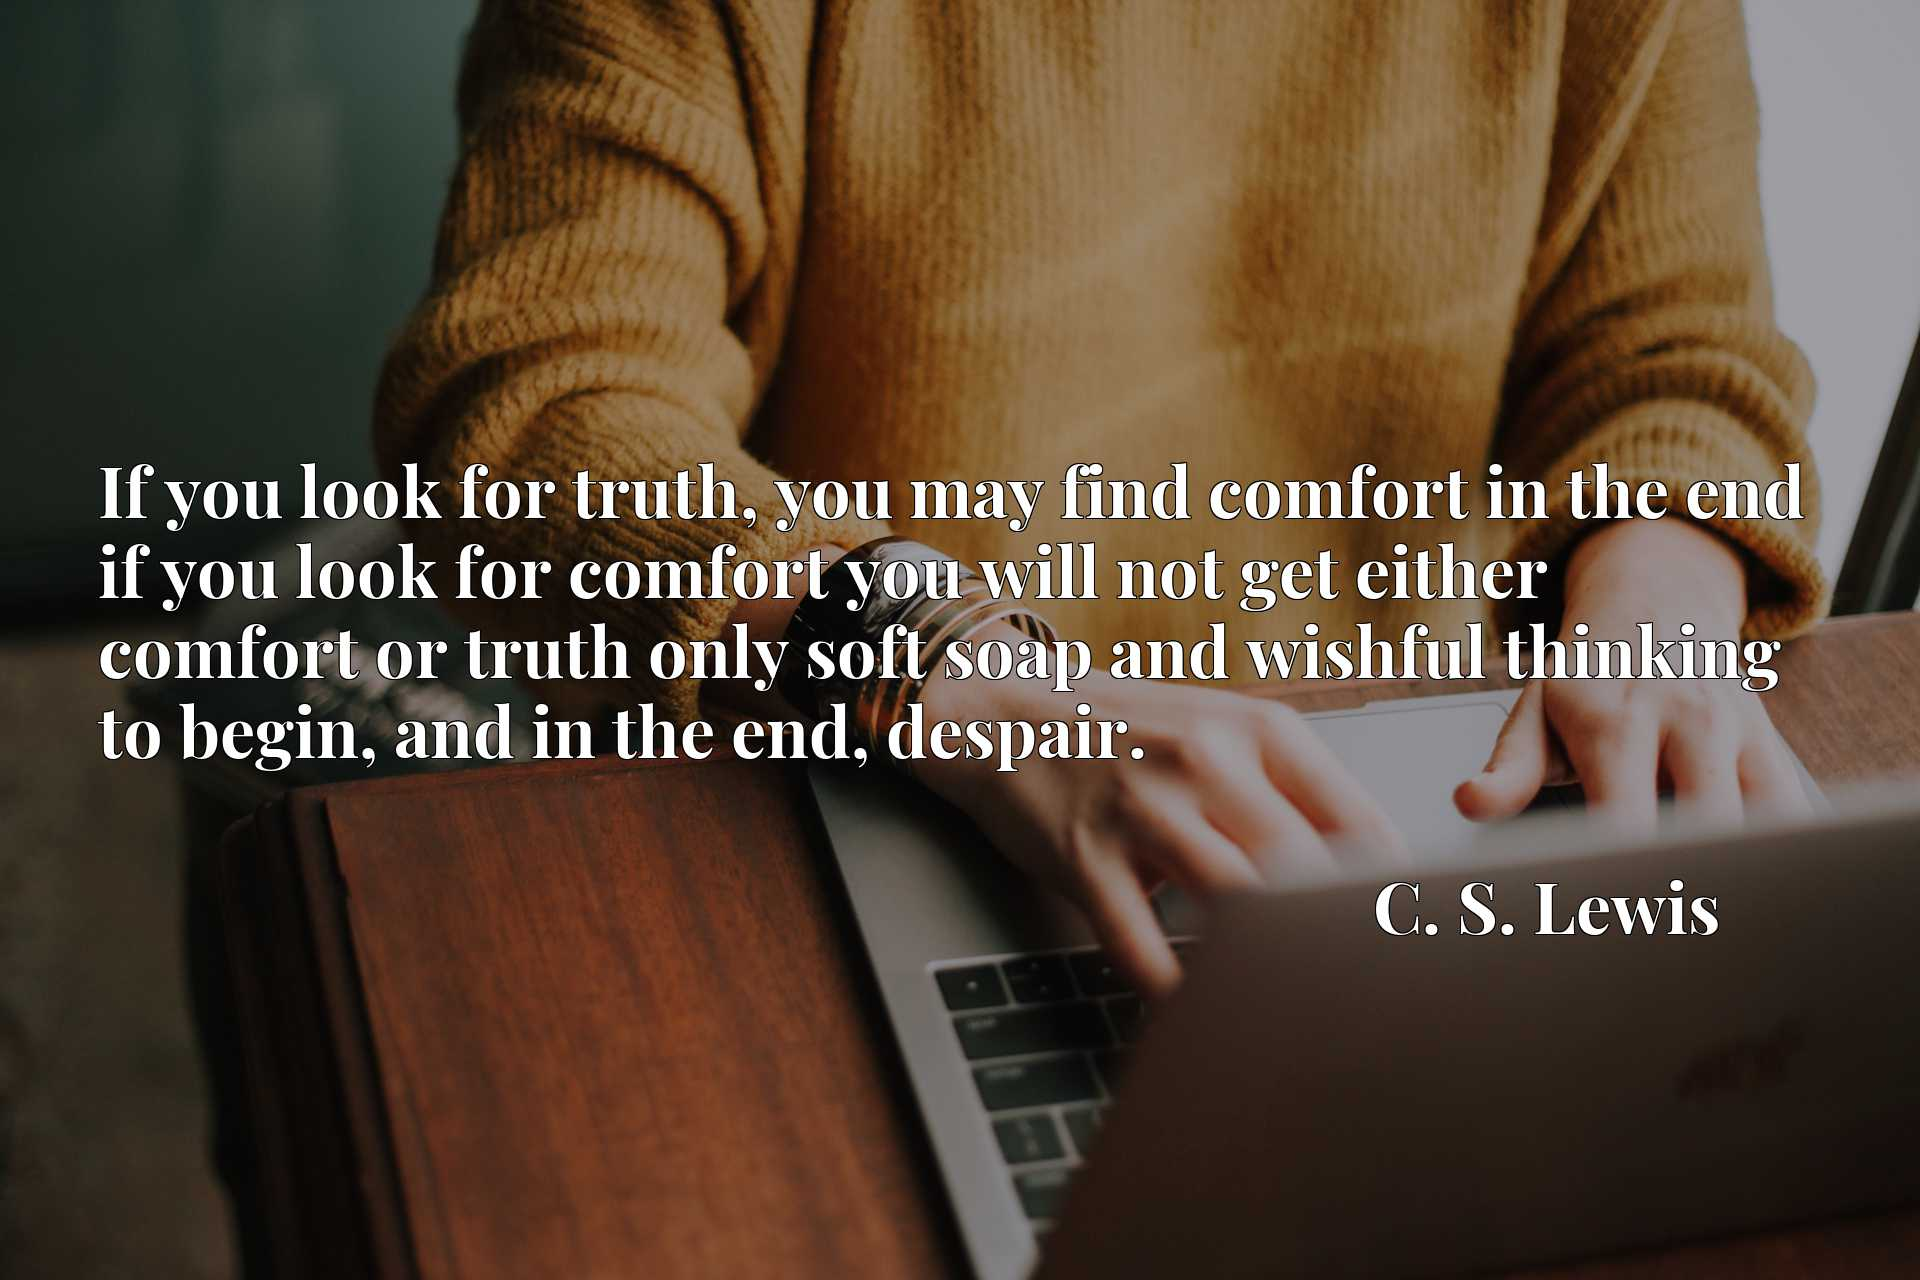 If you look for truth, you may find comfort in the end if you look for comfort you will not get either comfort or truth only soft soap and wishful thinking to begin, and in the end, despair.